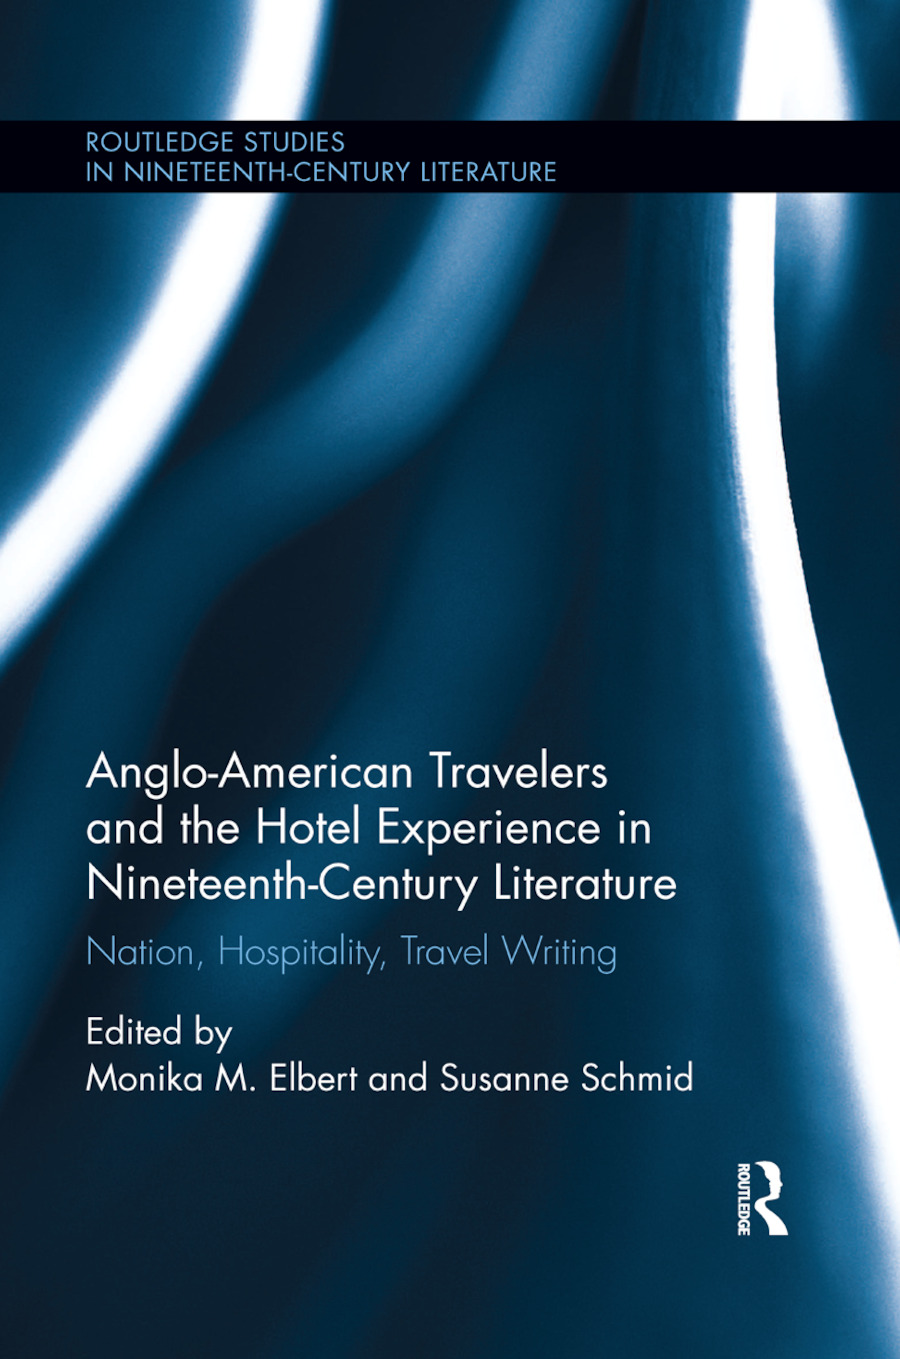 Anglo-American Travelers and the Hotel Experience in Nineteenth-Century Literature: Nation, Hospitality, Travel Writing, 1st Edition (Paperback) book cover